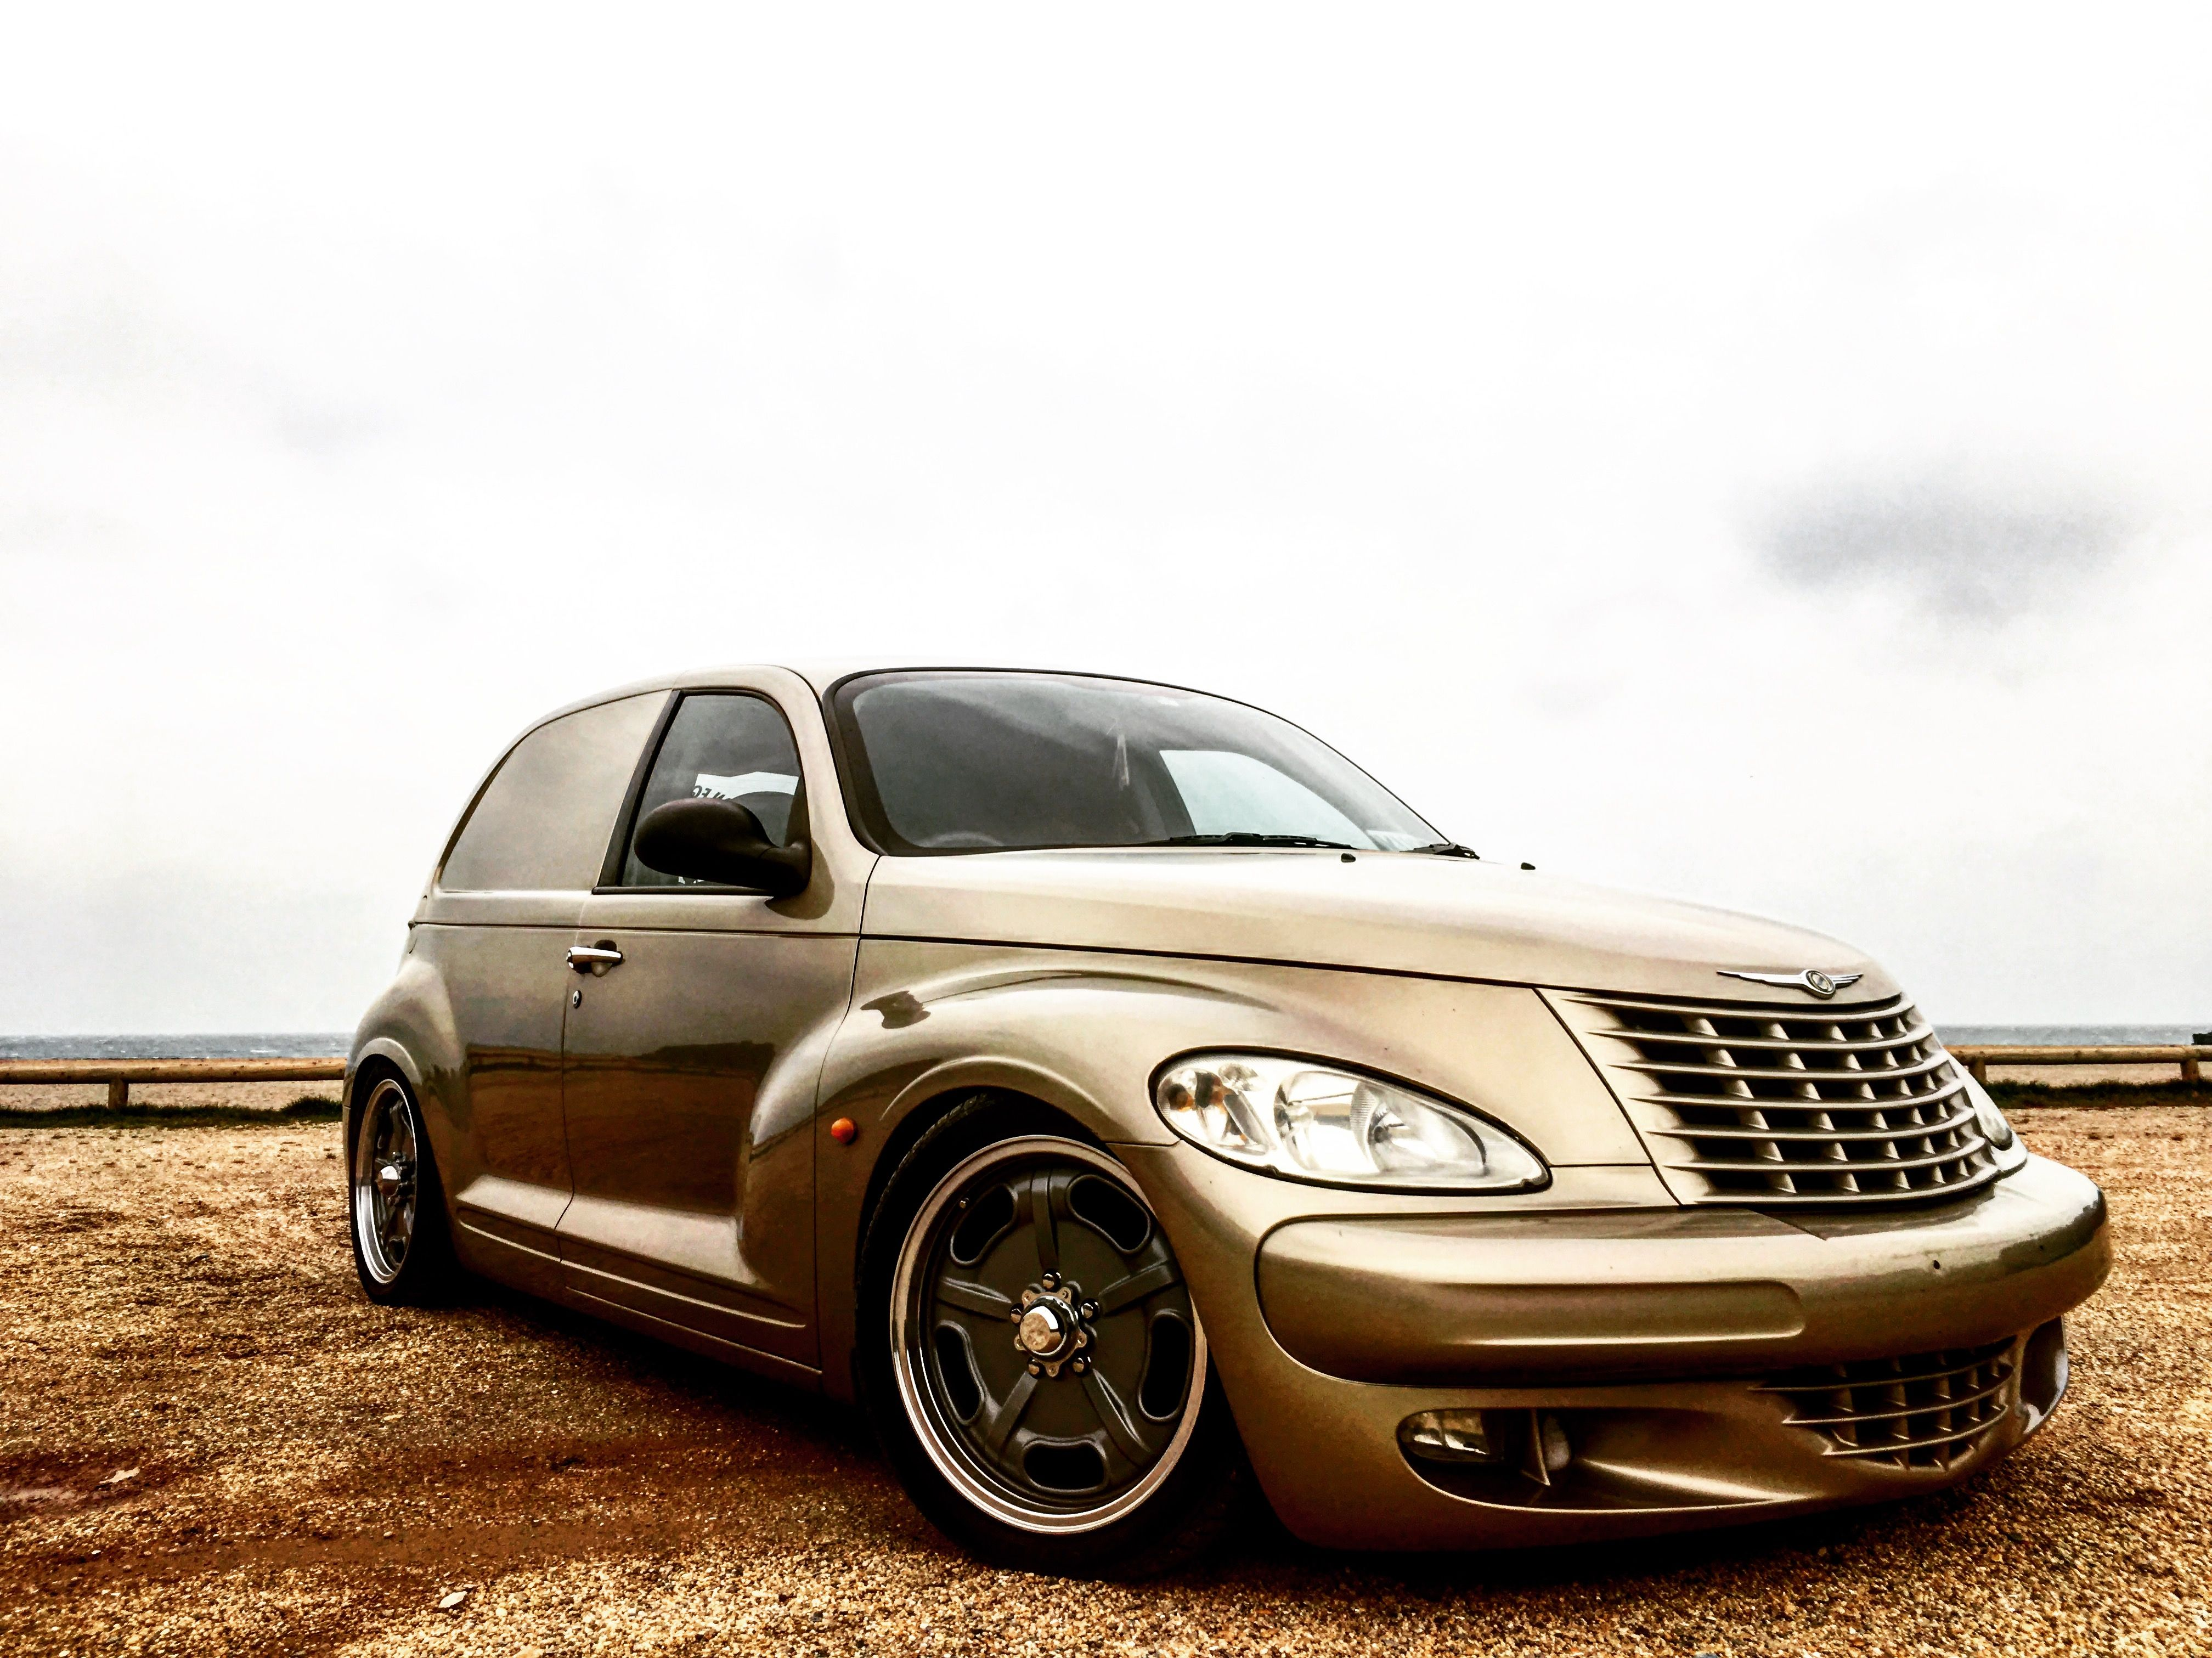 Bagged pt cruiser panel van standard delivery stanced air ride